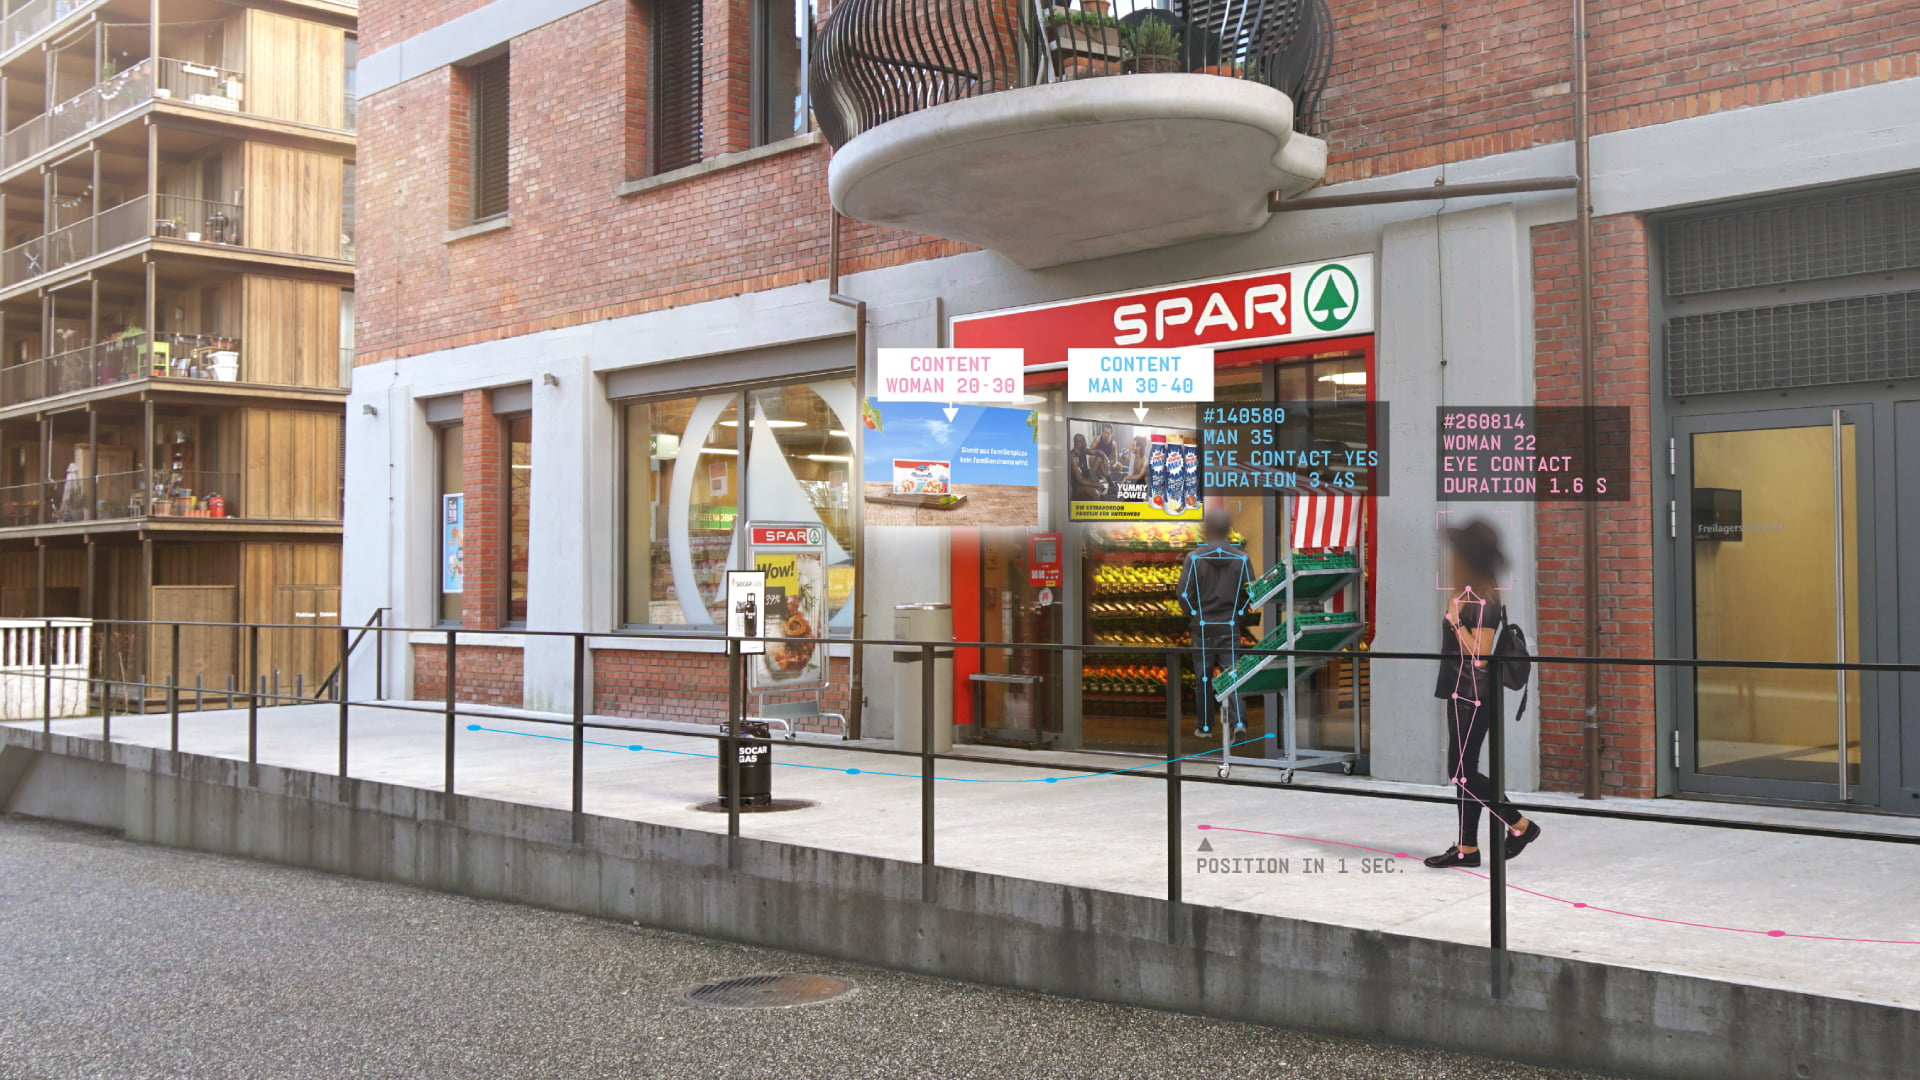 With Advertima's AI-Powered Digital Signage, SPAR Increases Sales by 10.5%